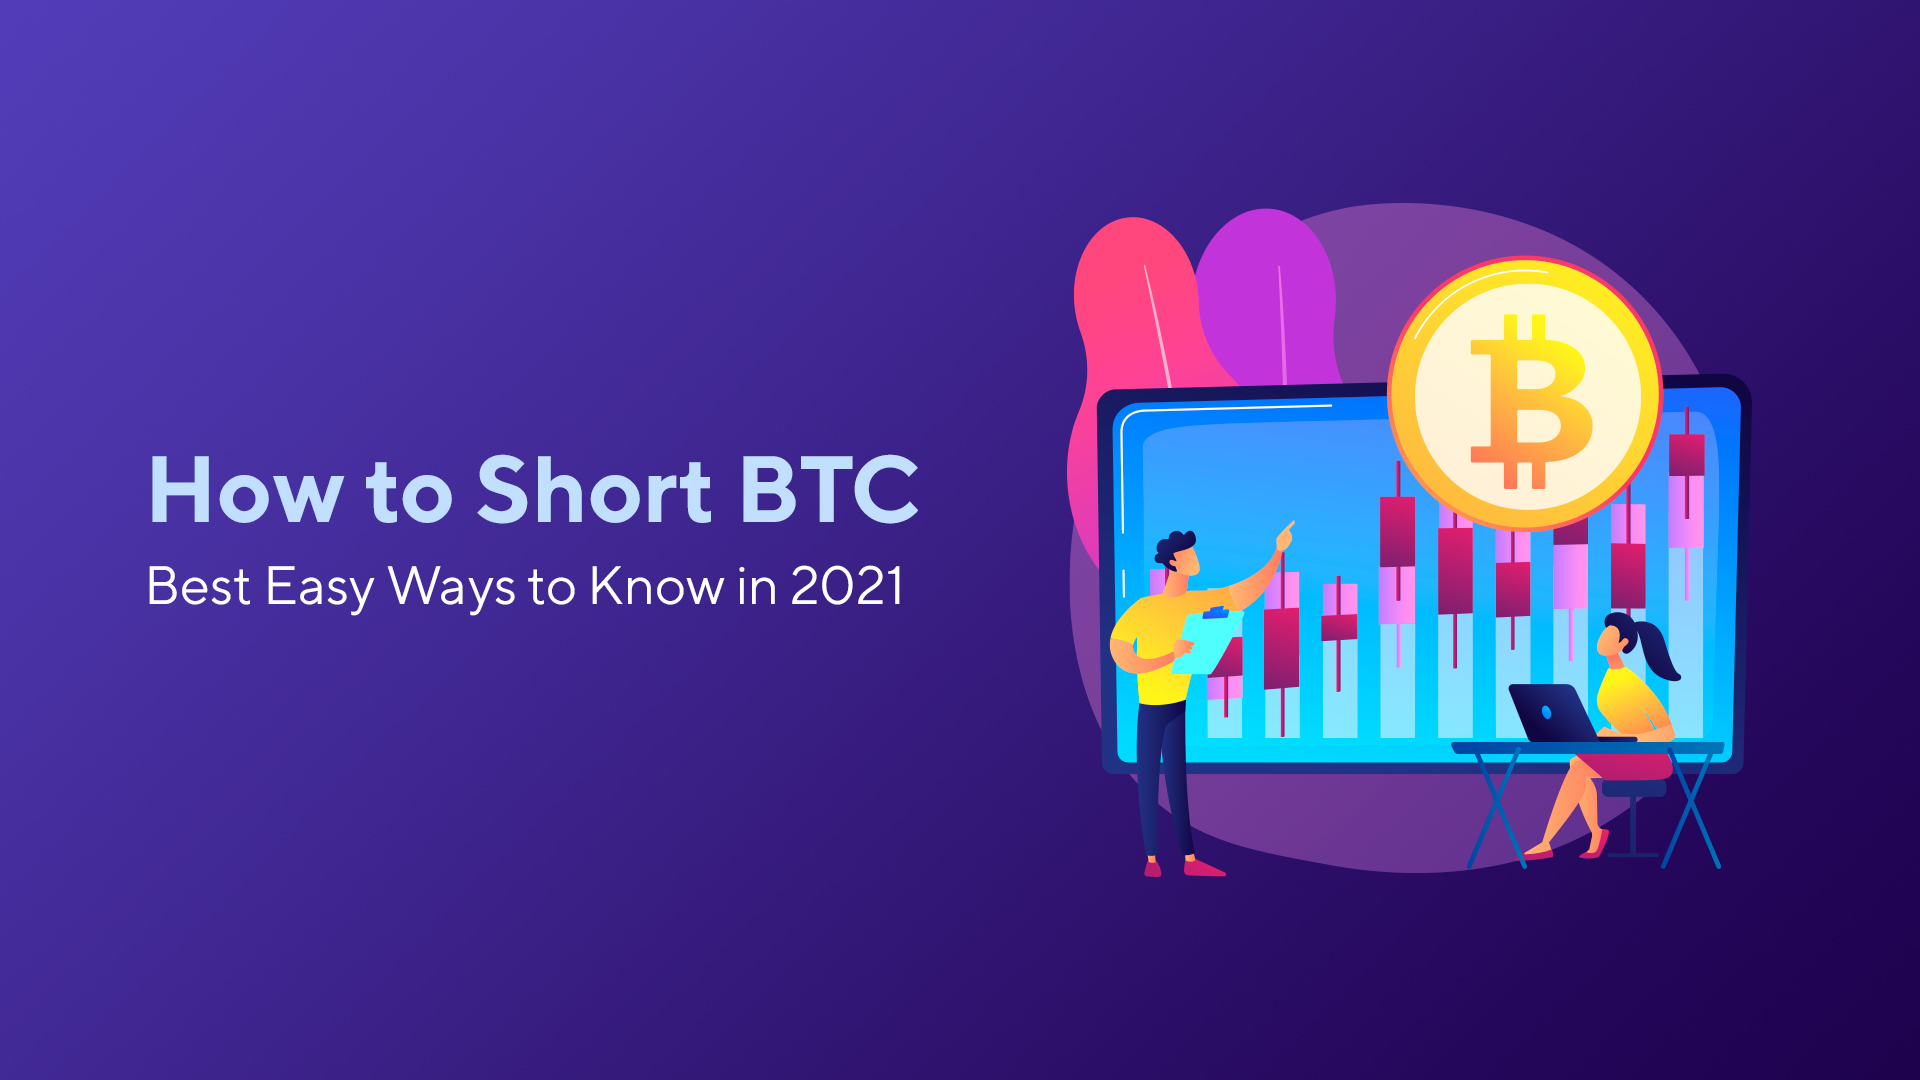 How to Short Bitcoin: Best Tips & Tricks to Know in 2021